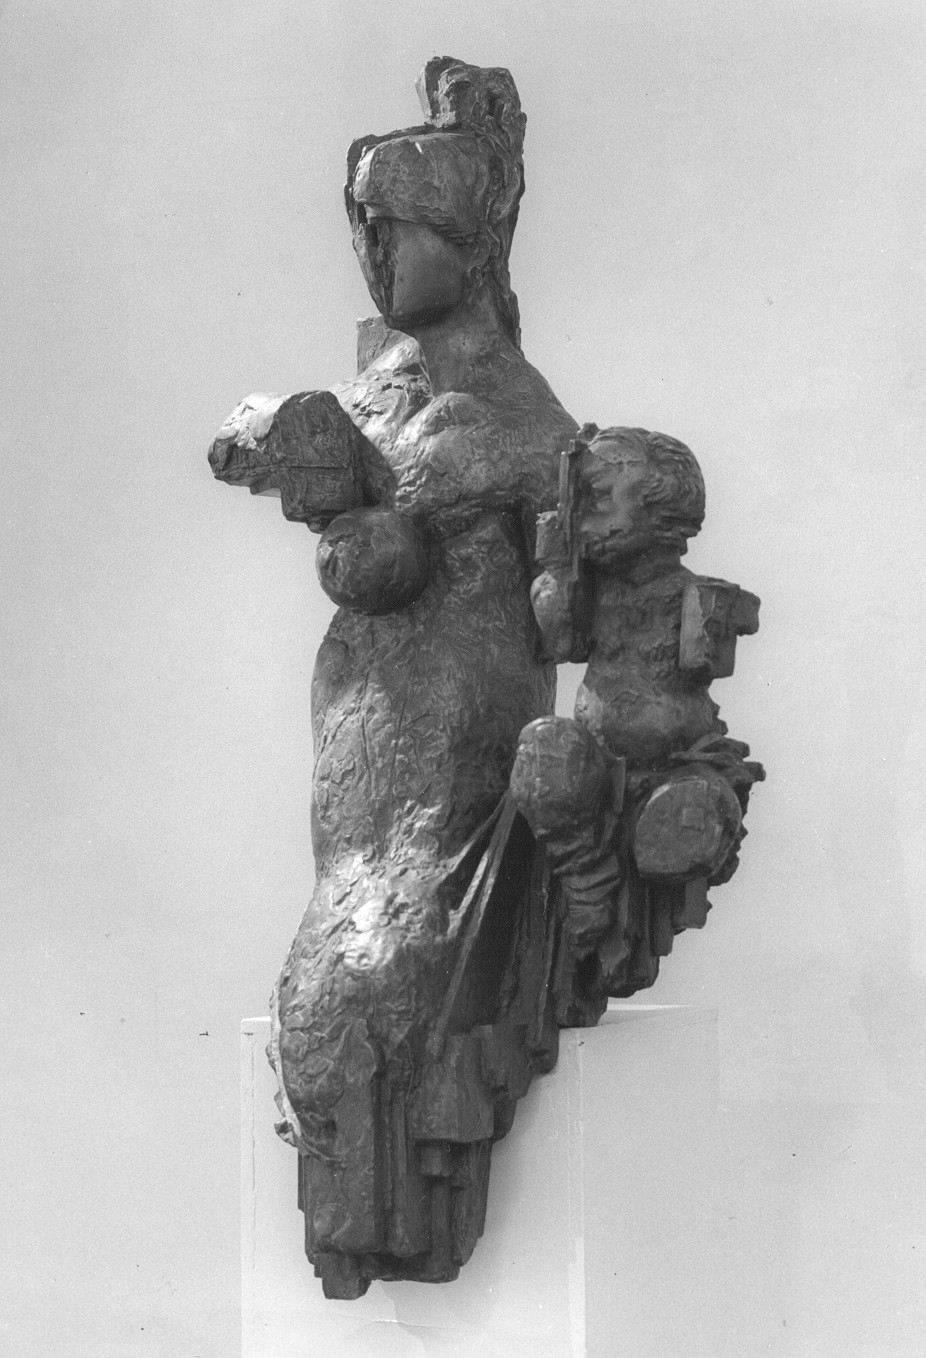 Motherhood, S. Hanzik, 1964